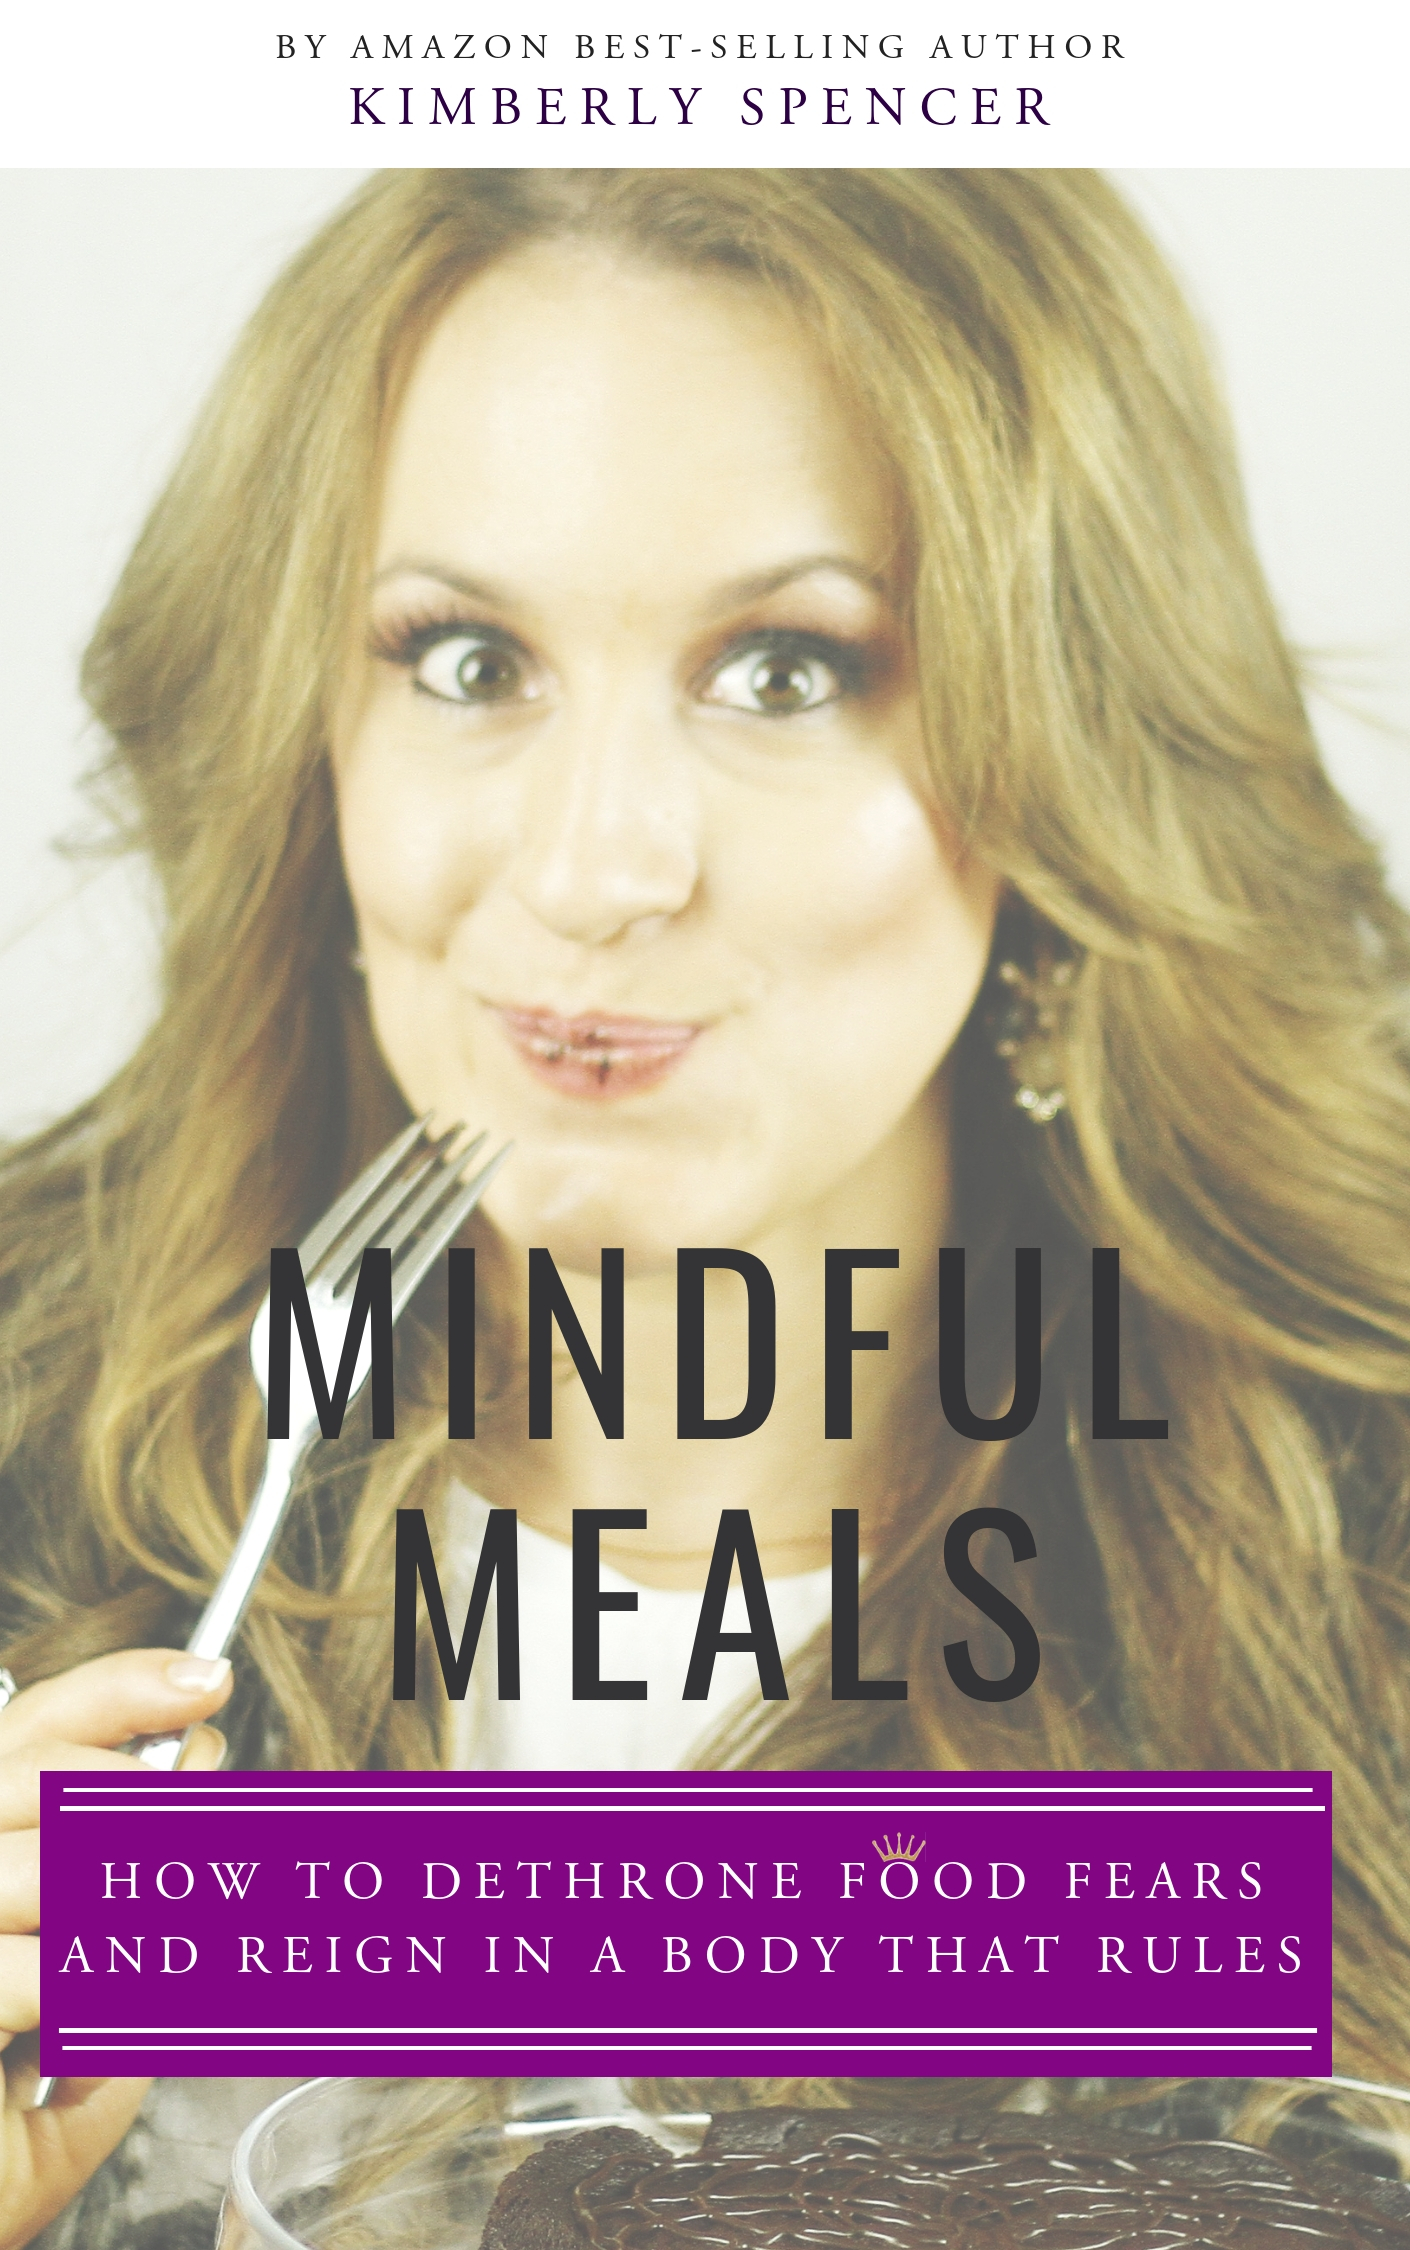 Mindful-Meals-Cover-2.jpg